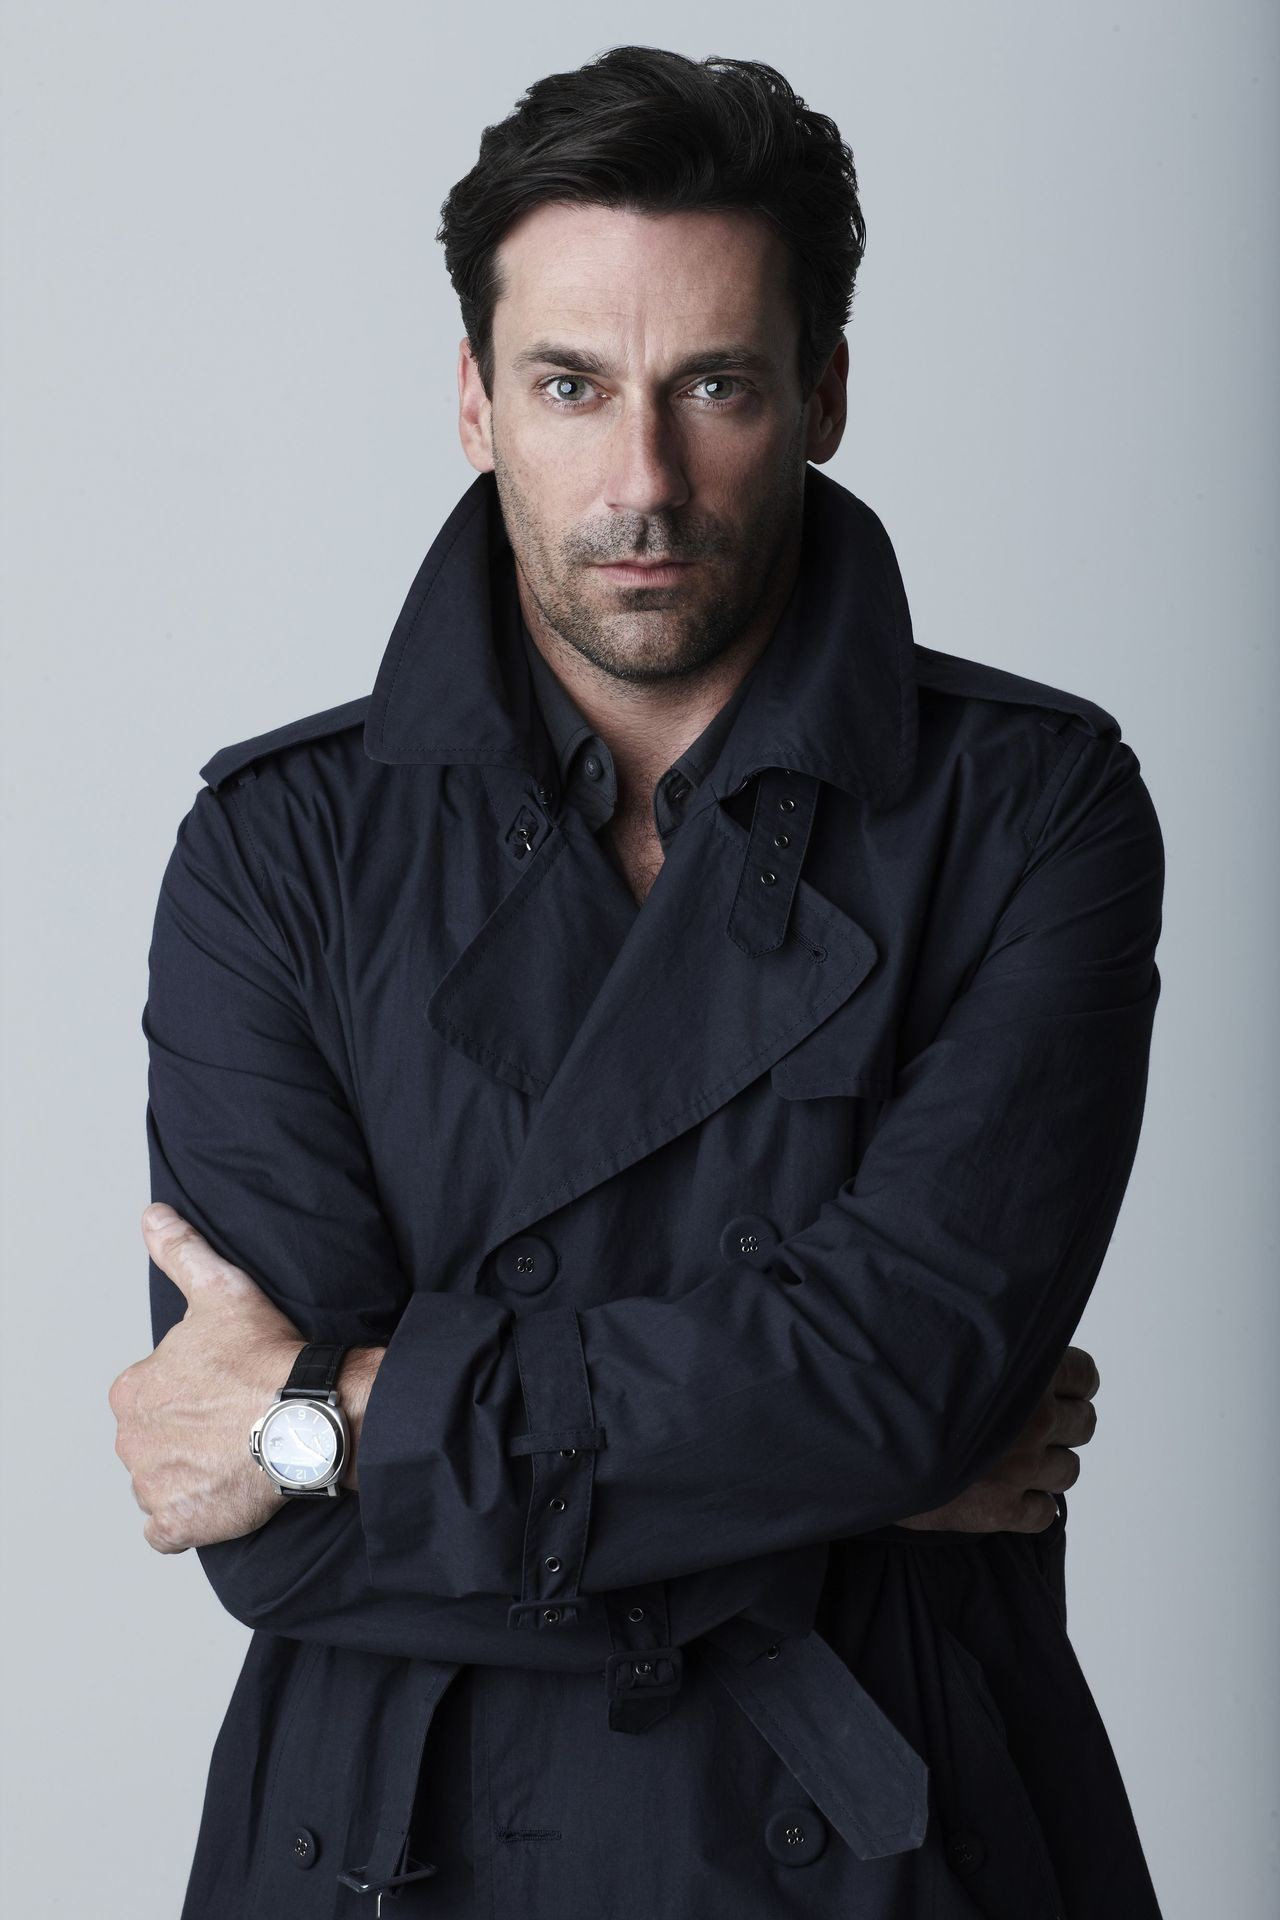 Res: 1280x1920, Jon Hamm HQ wallpapers Jon Hamm Desktop wallpapers